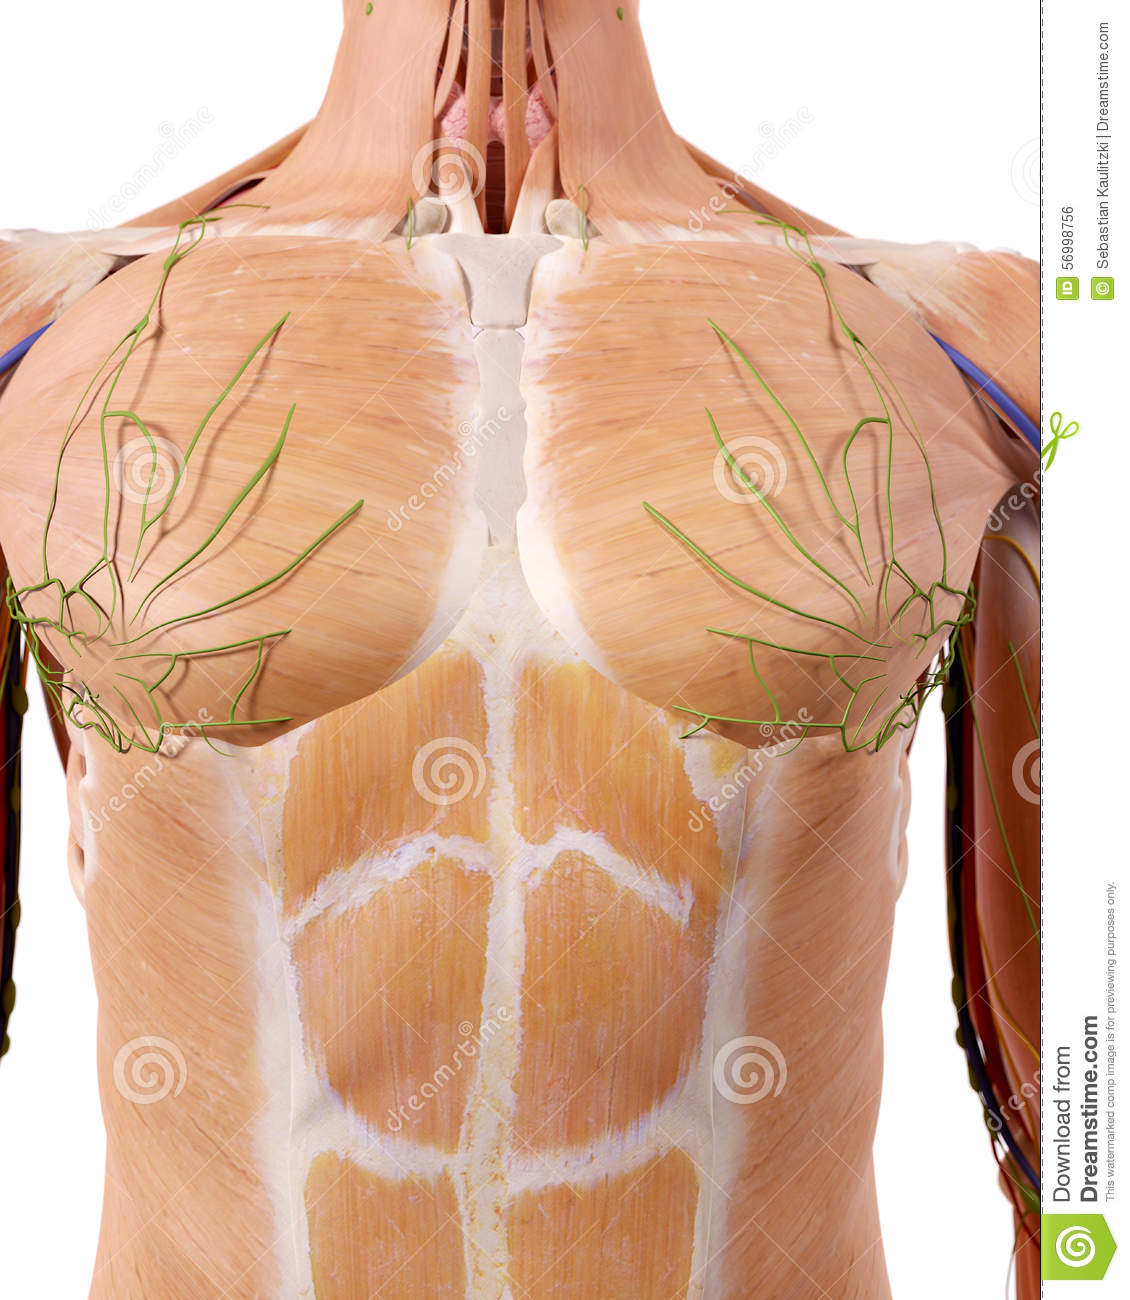 The upper body anatomy stock illustration. Illustration of nerves ...